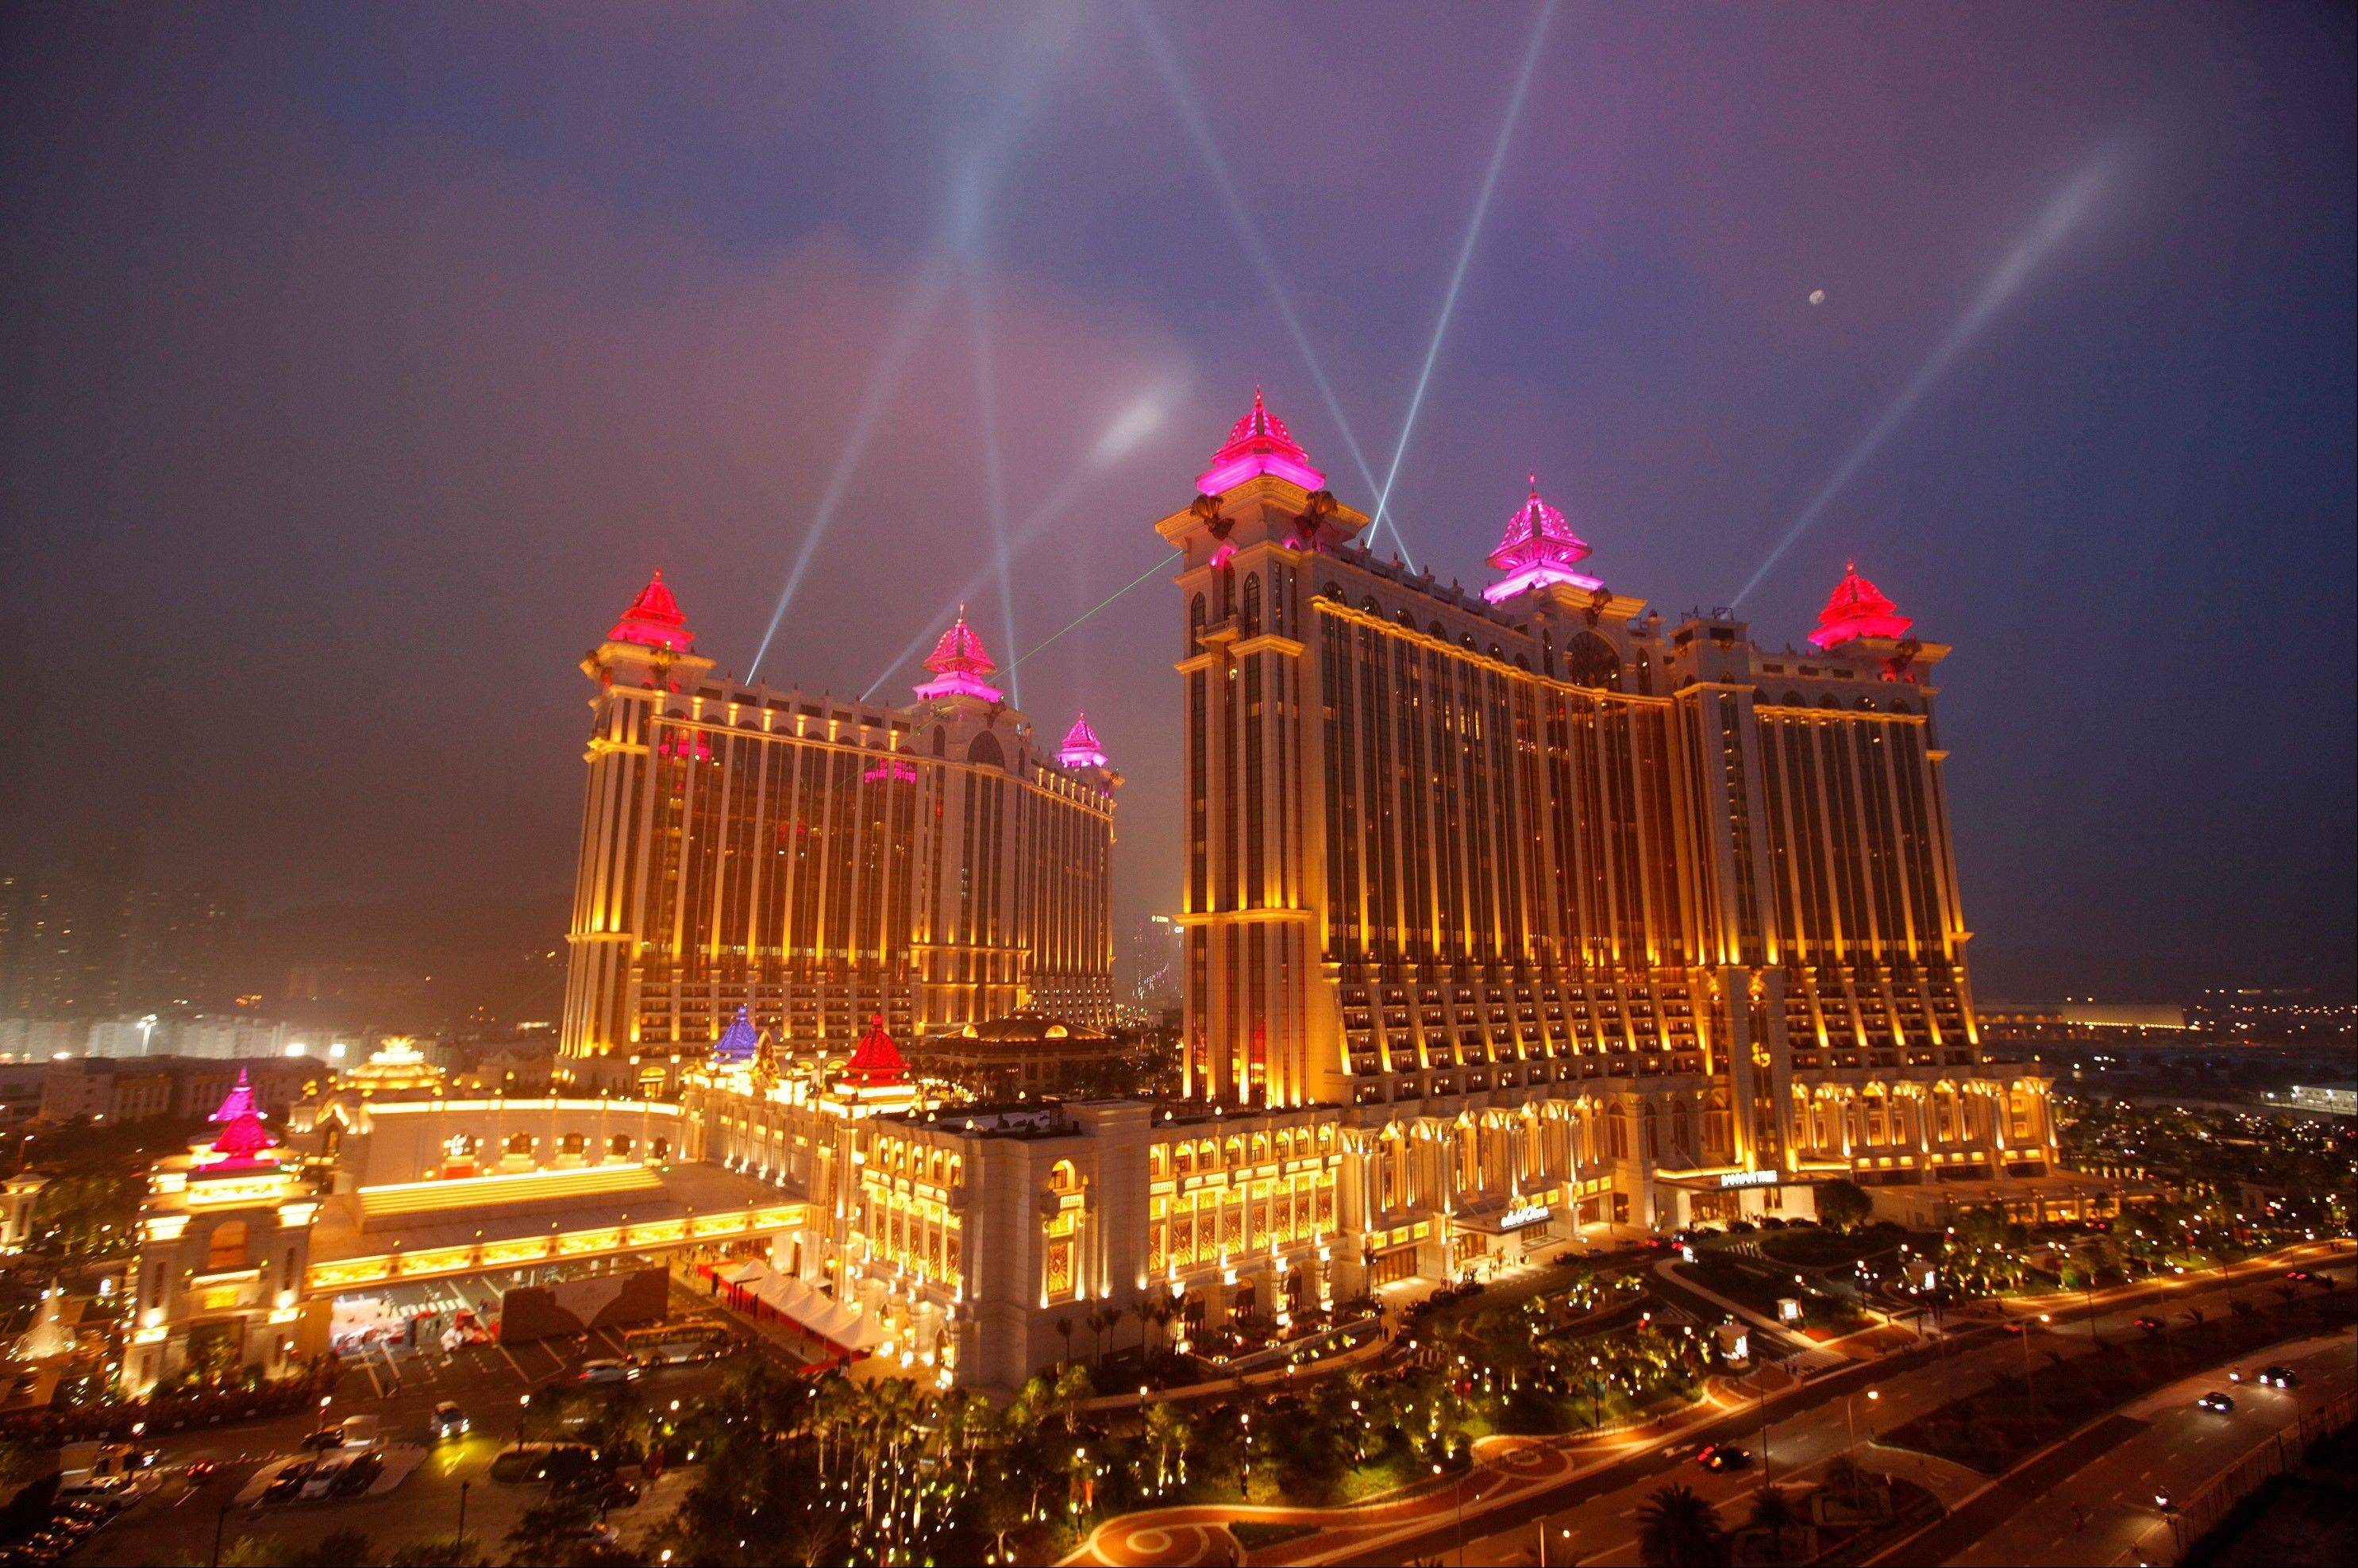 In this May 15, 2011 file photo, the complex of Galaxy Macau is illuminated in Macau. In the Philippines, a $4-billion casino project will soon rise from reclaimed land on Manila Bay. In South Korea, foreign investors are scheduled to break ground next year on a clutch of casino resorts offshore.